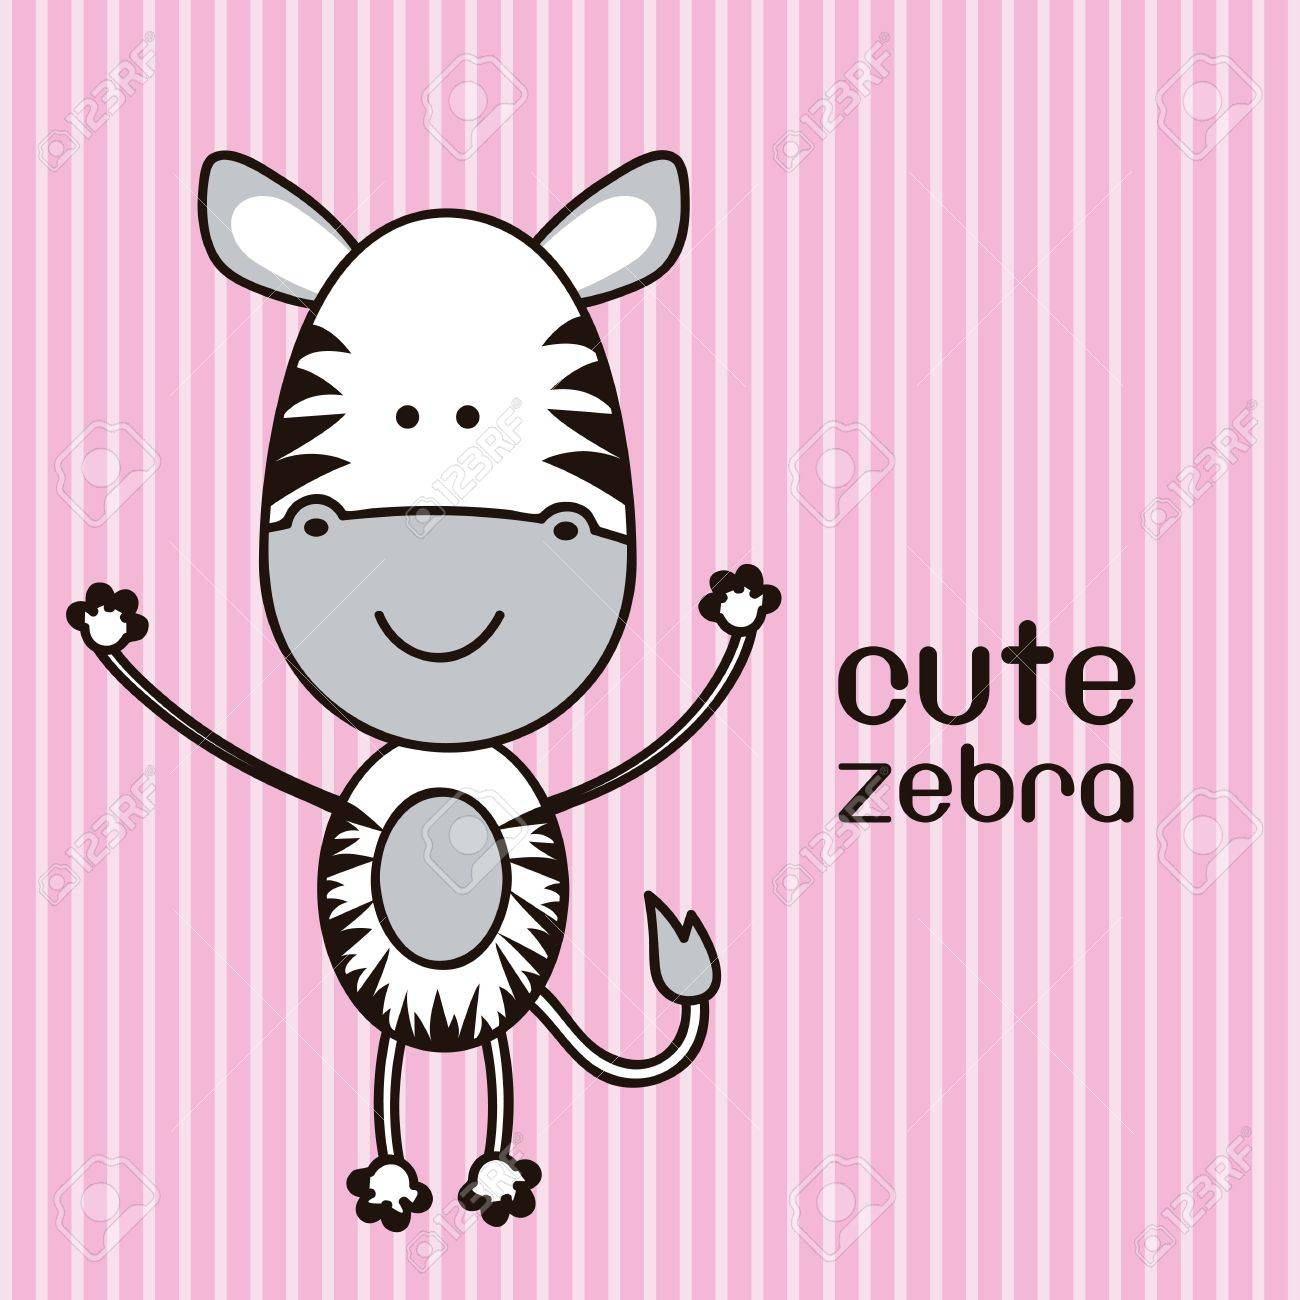 Illustration of a cute zebra background, illustration Stock Vector - 15205604